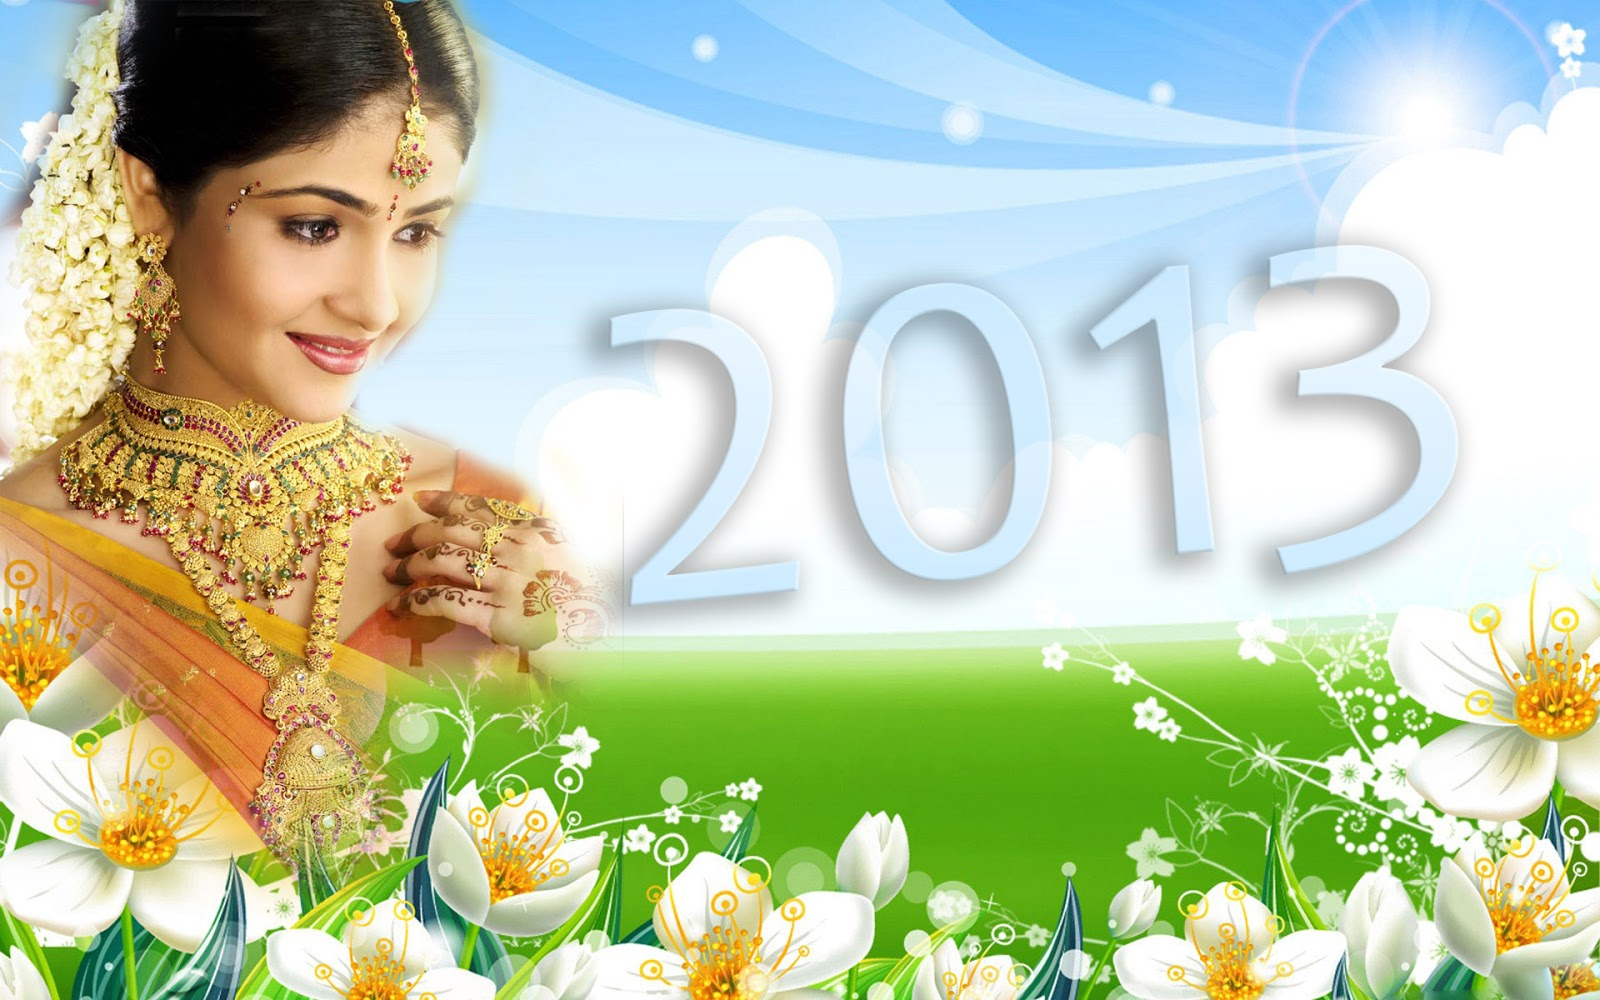 http://1.bp.blogspot.com/-Us2eCkBxb0M/UOHVOG-KlTI/AAAAAAAAB1I/q1PFAb6ngg8/s1600/Wallpaper+Happy+New+Year+2013.jpg